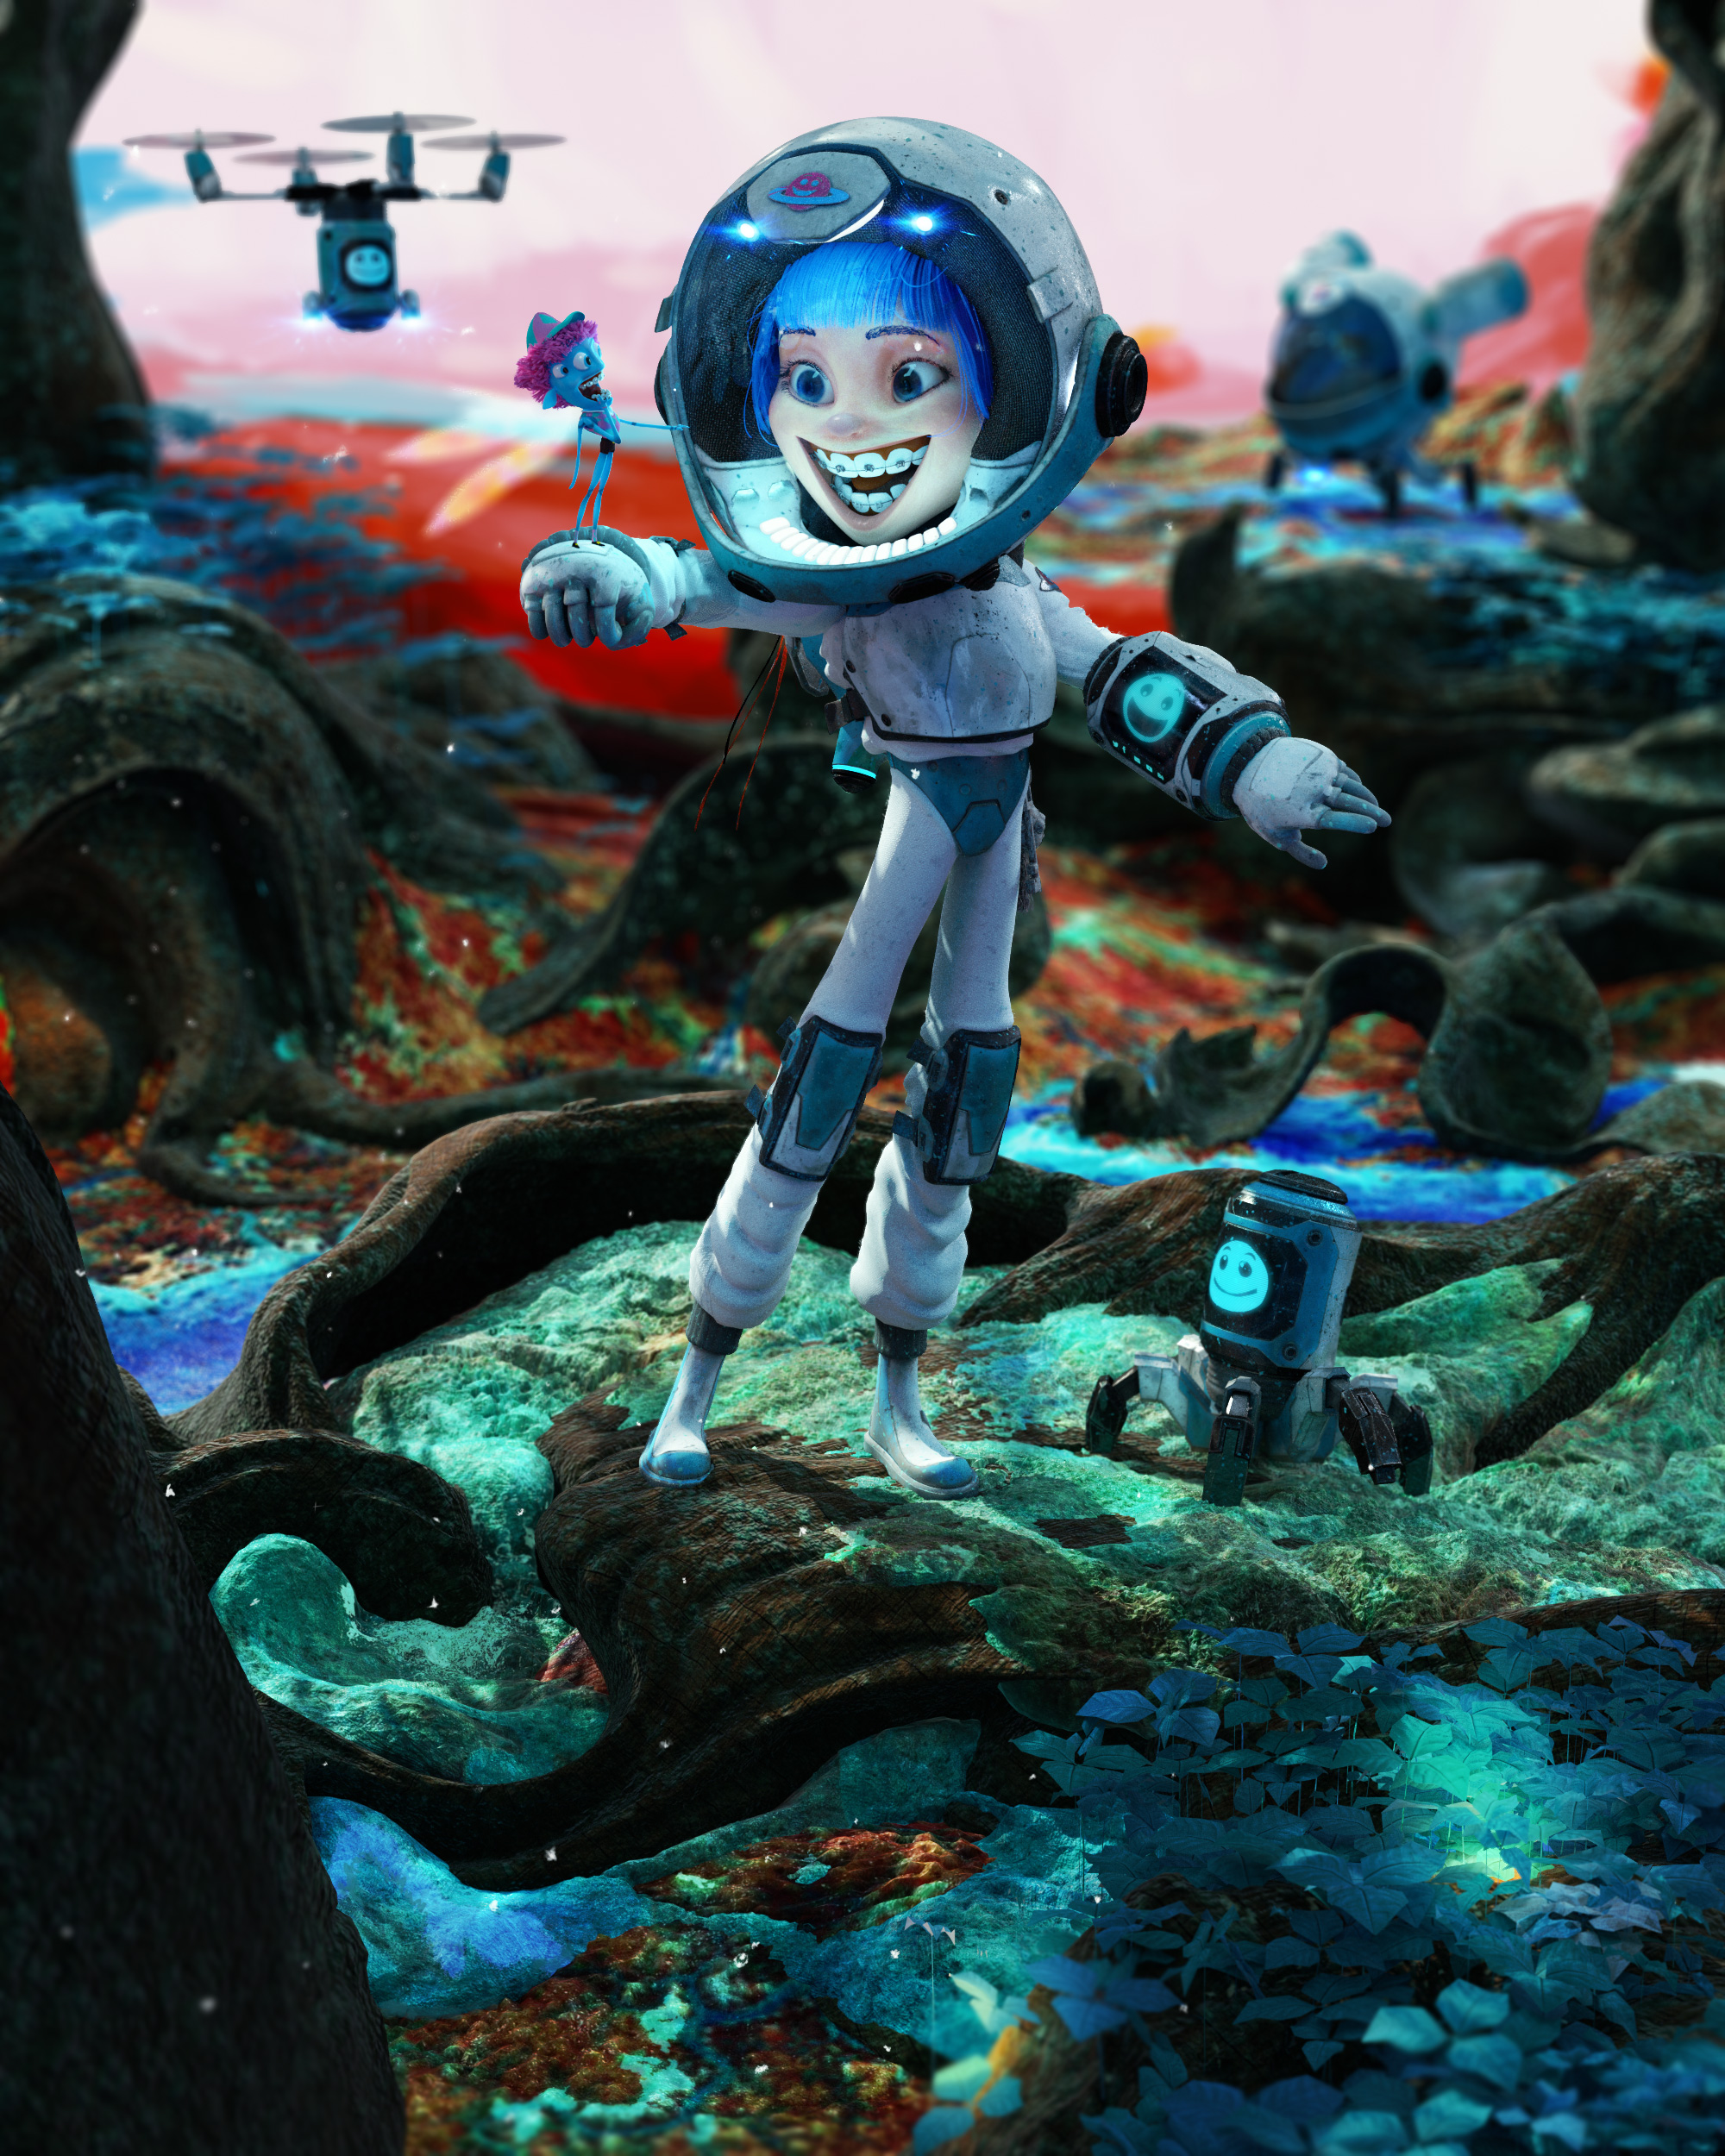 The Space Kid 3d art